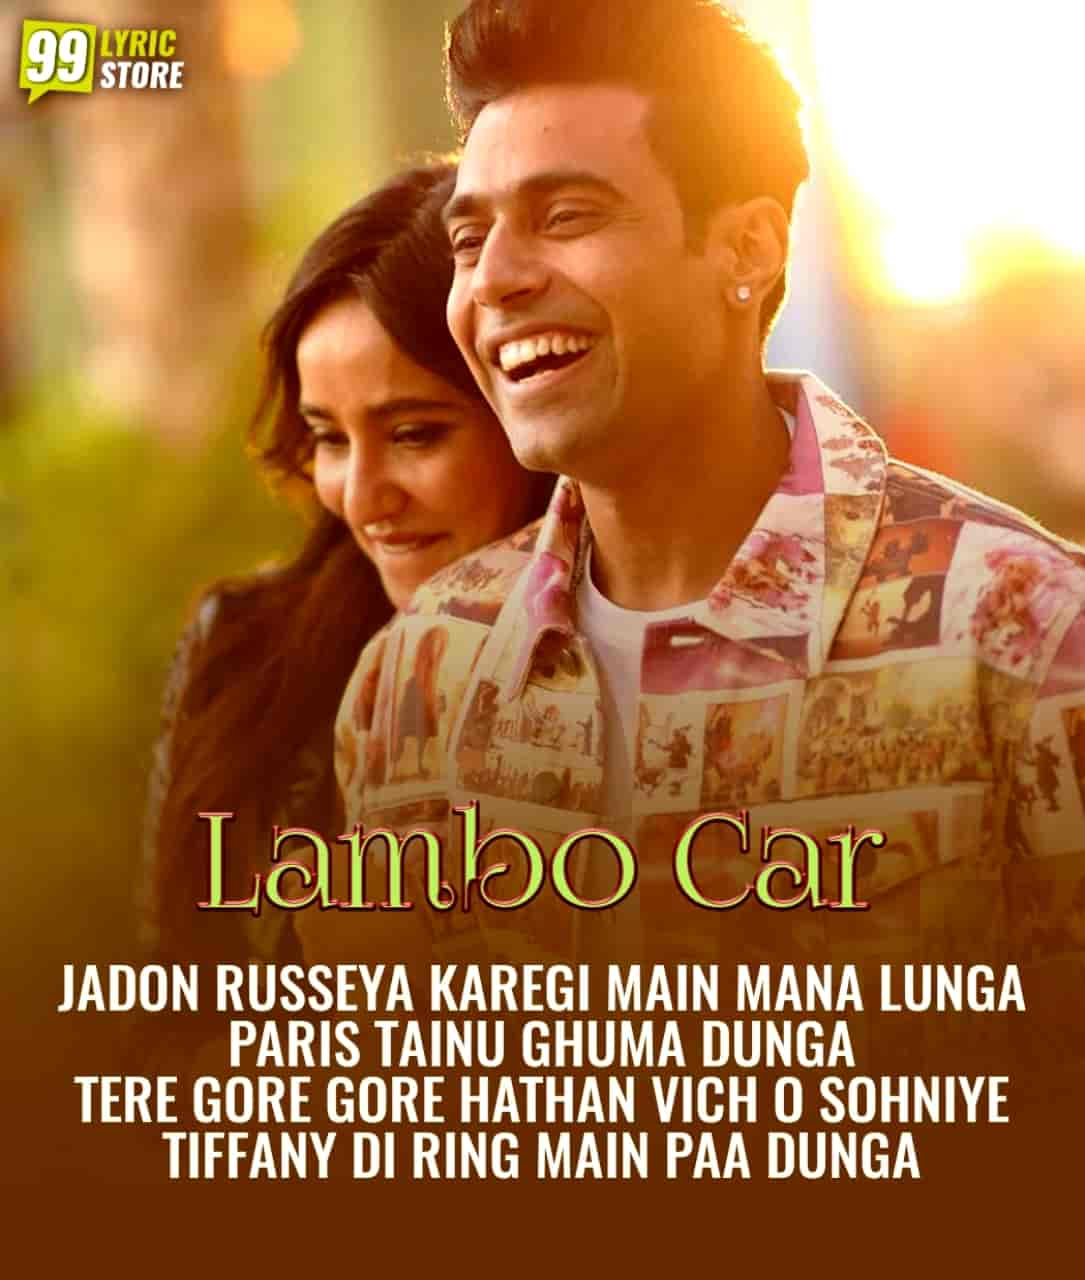 Lambo Car cute punjabi song image features Guri and Neha Sharma